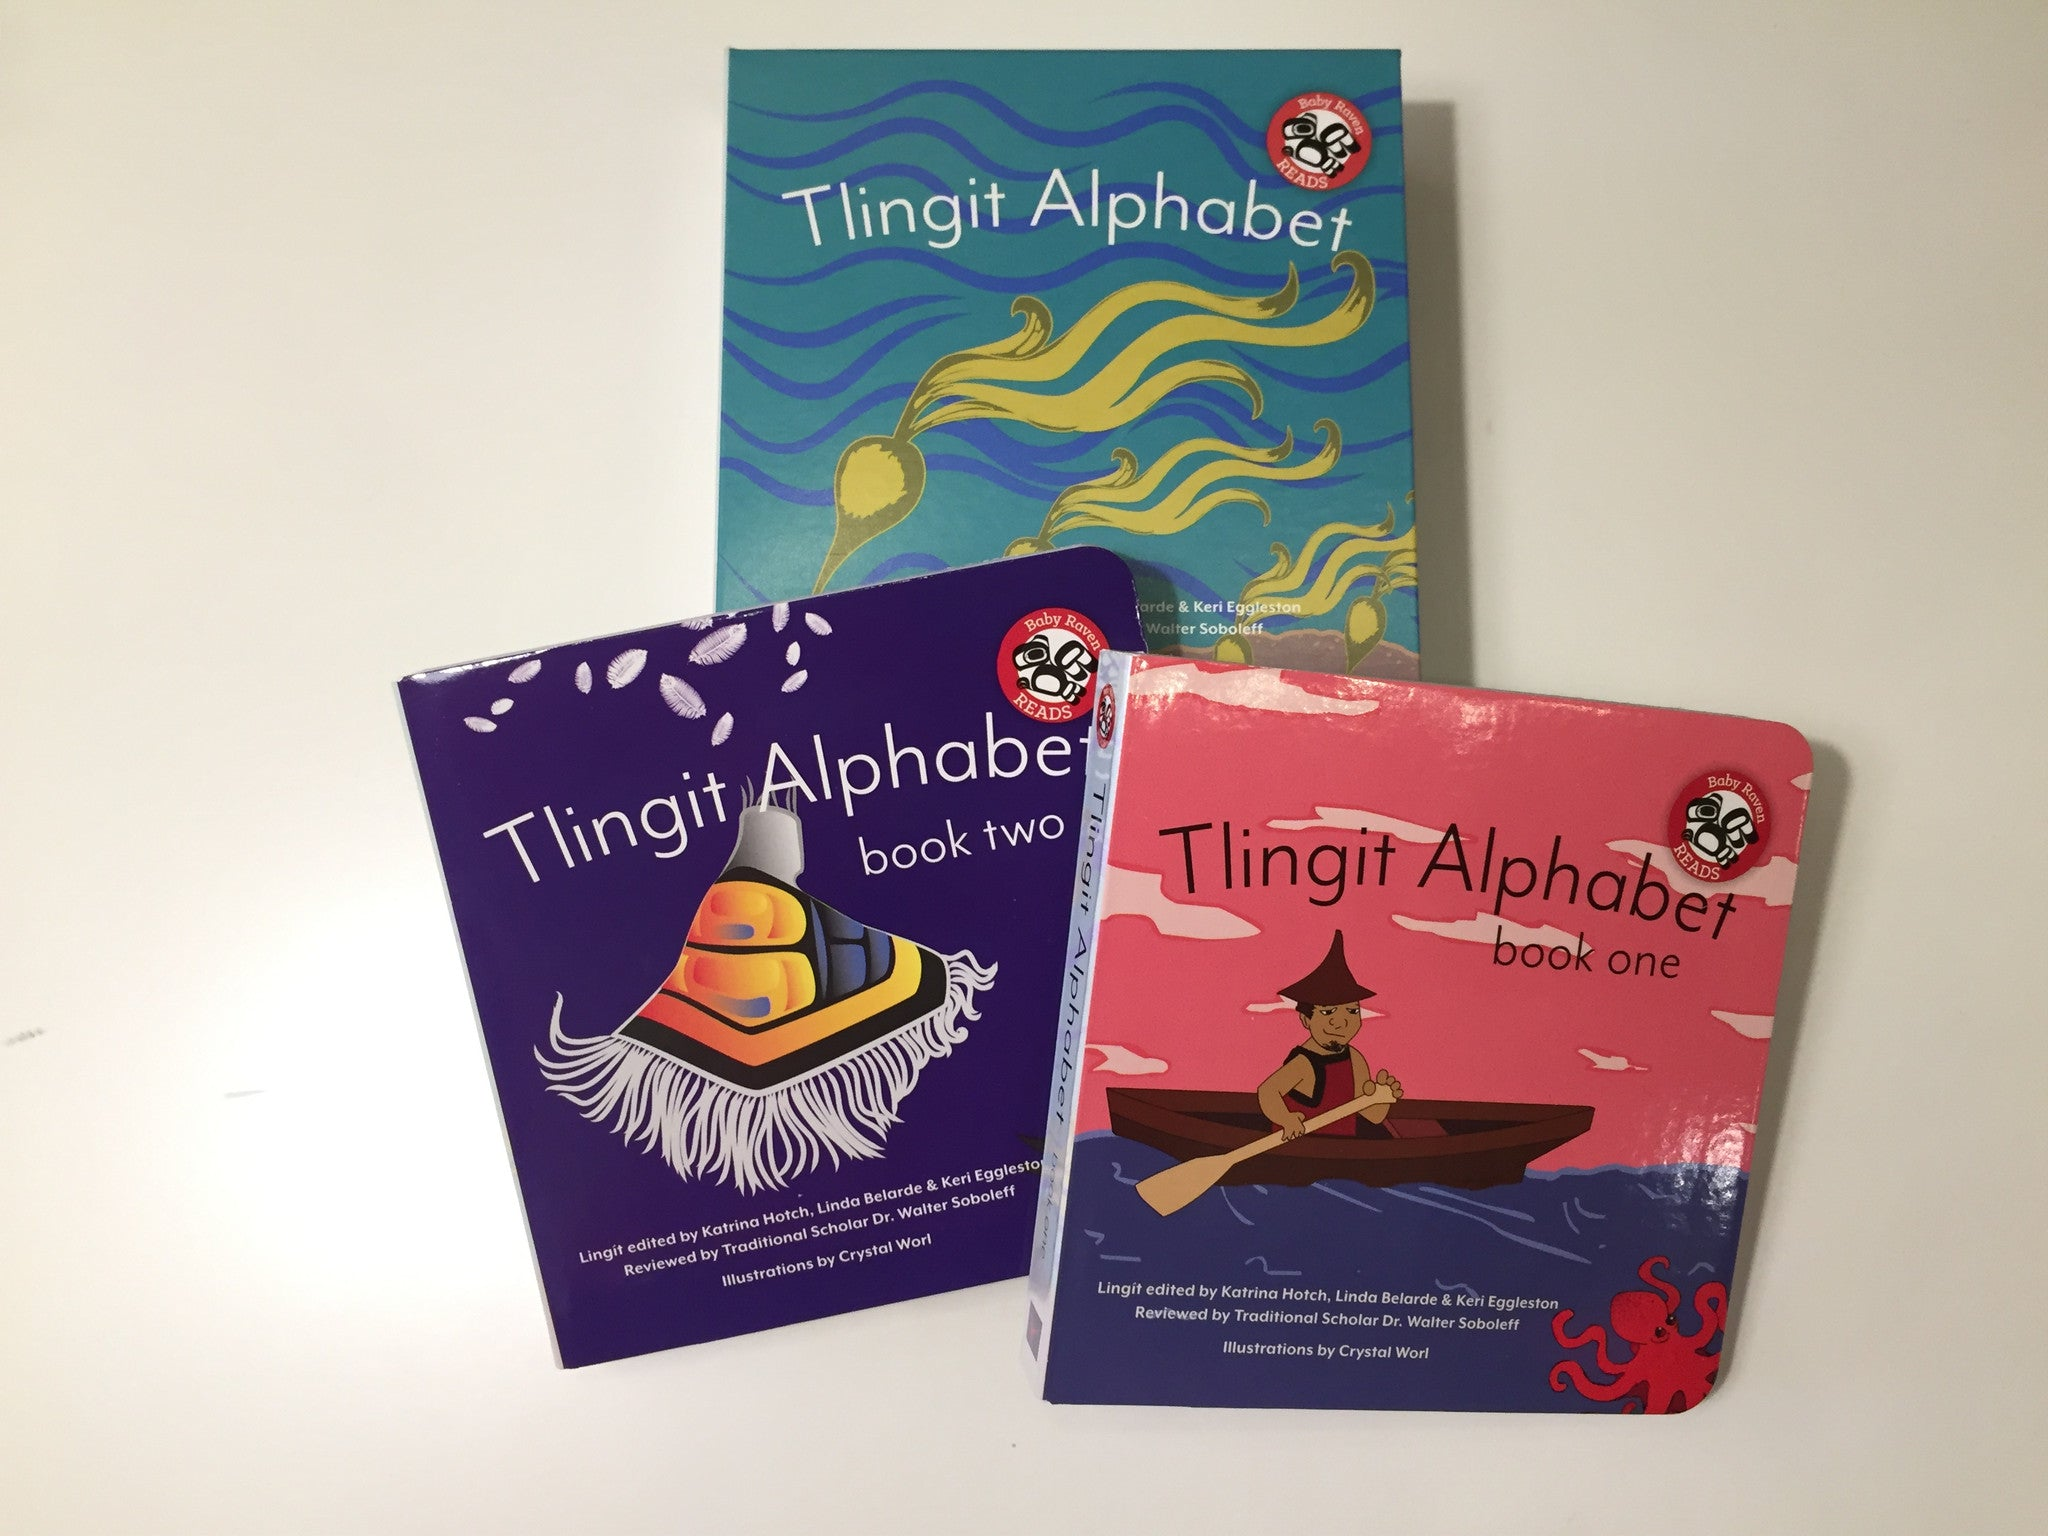 Tlingit Alphabet Book Set